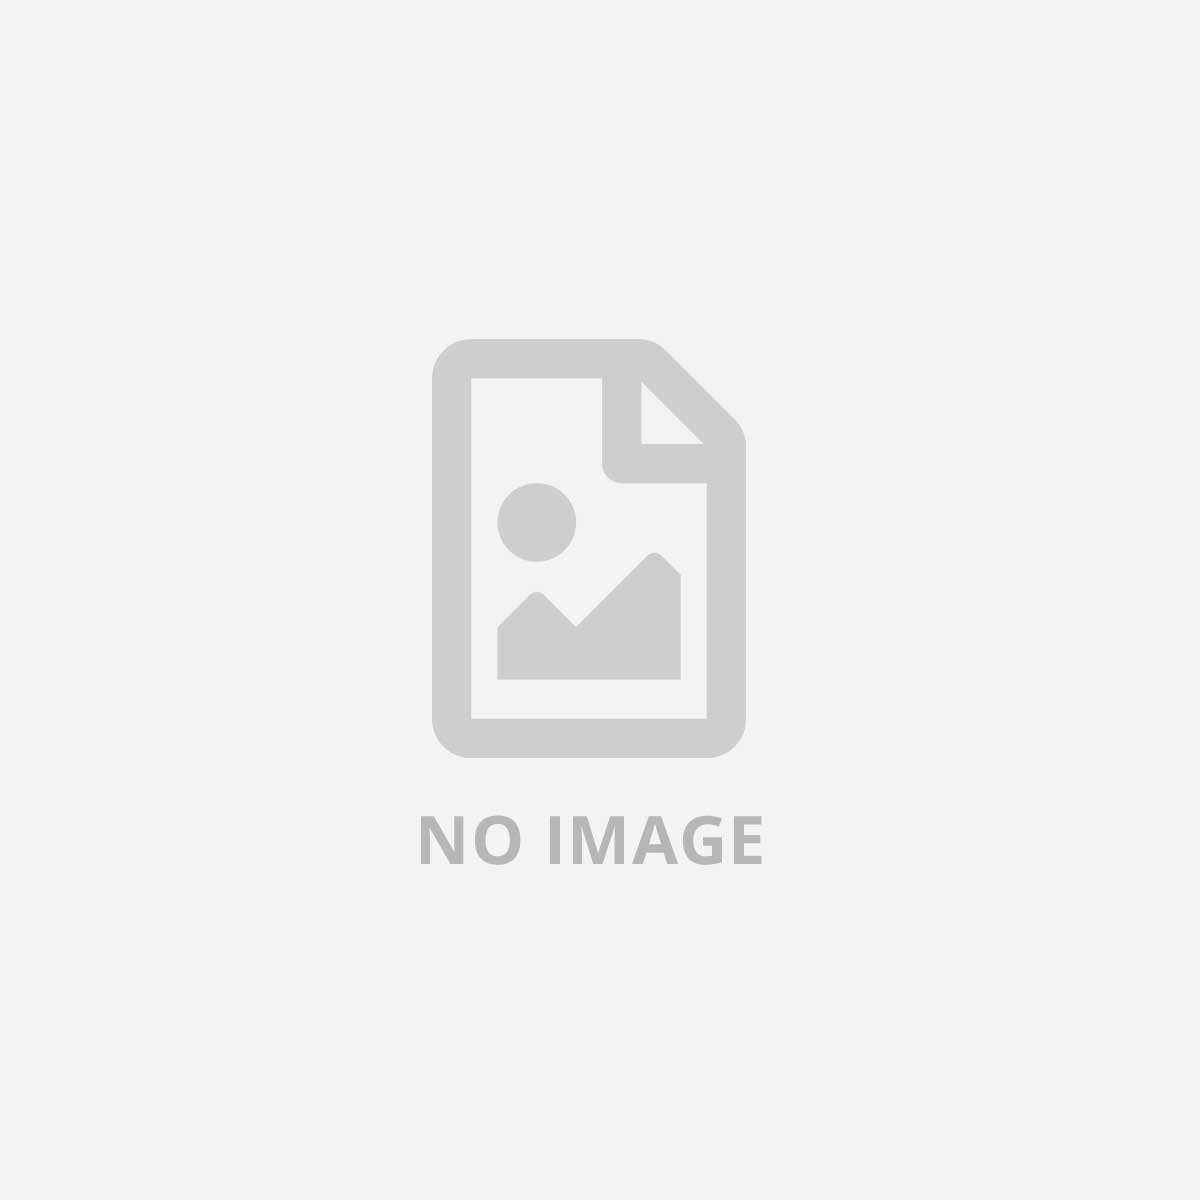 ELECTRONIC ARTS XONE ANTHEM